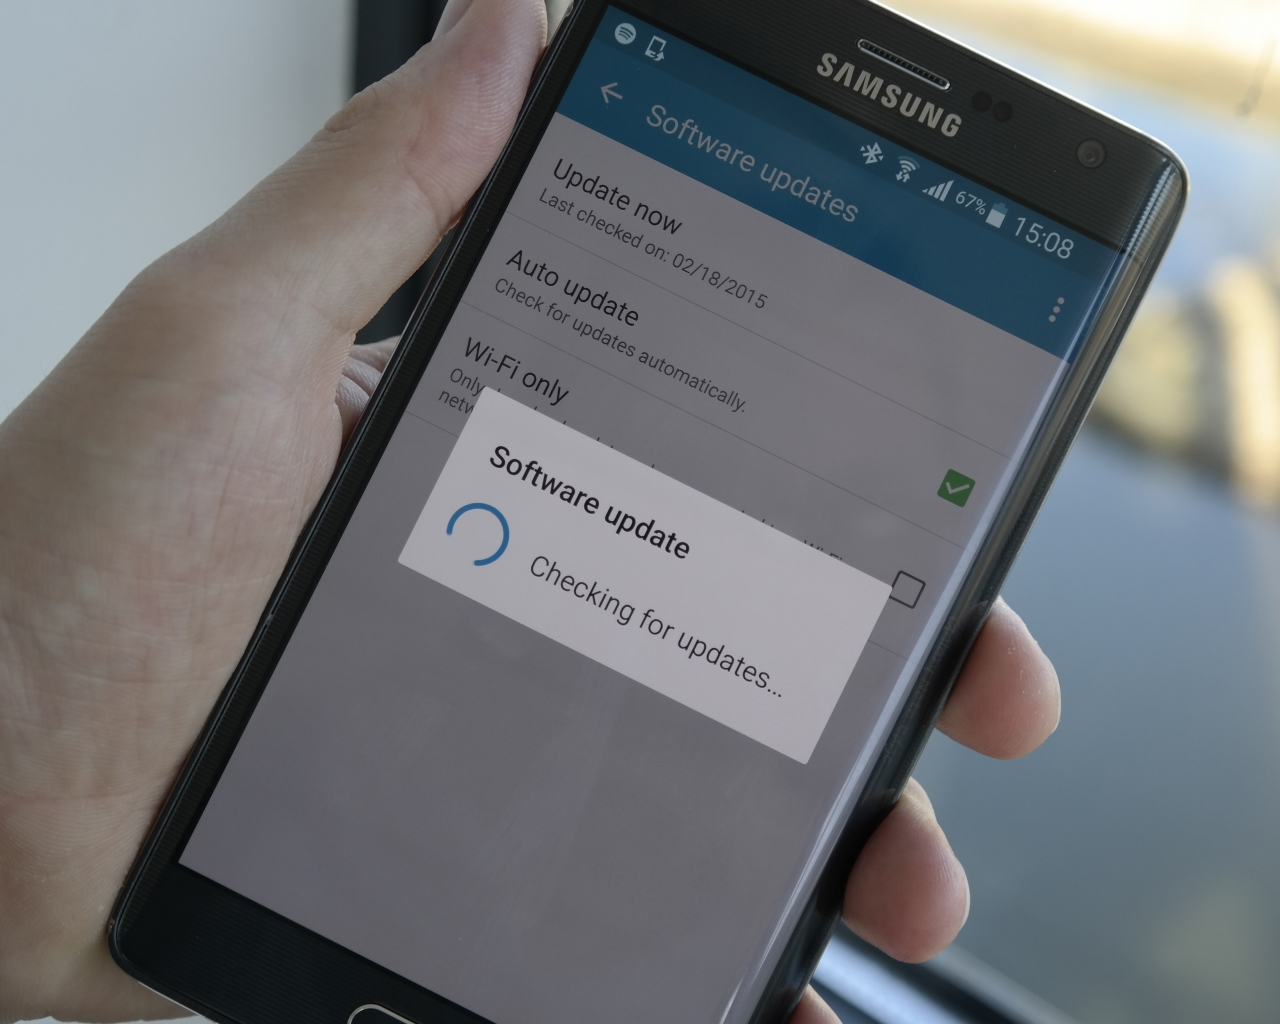 09-24-2015 Firmware Updates: Galaxy S6, Galaxy A3, Galaxy J1, and